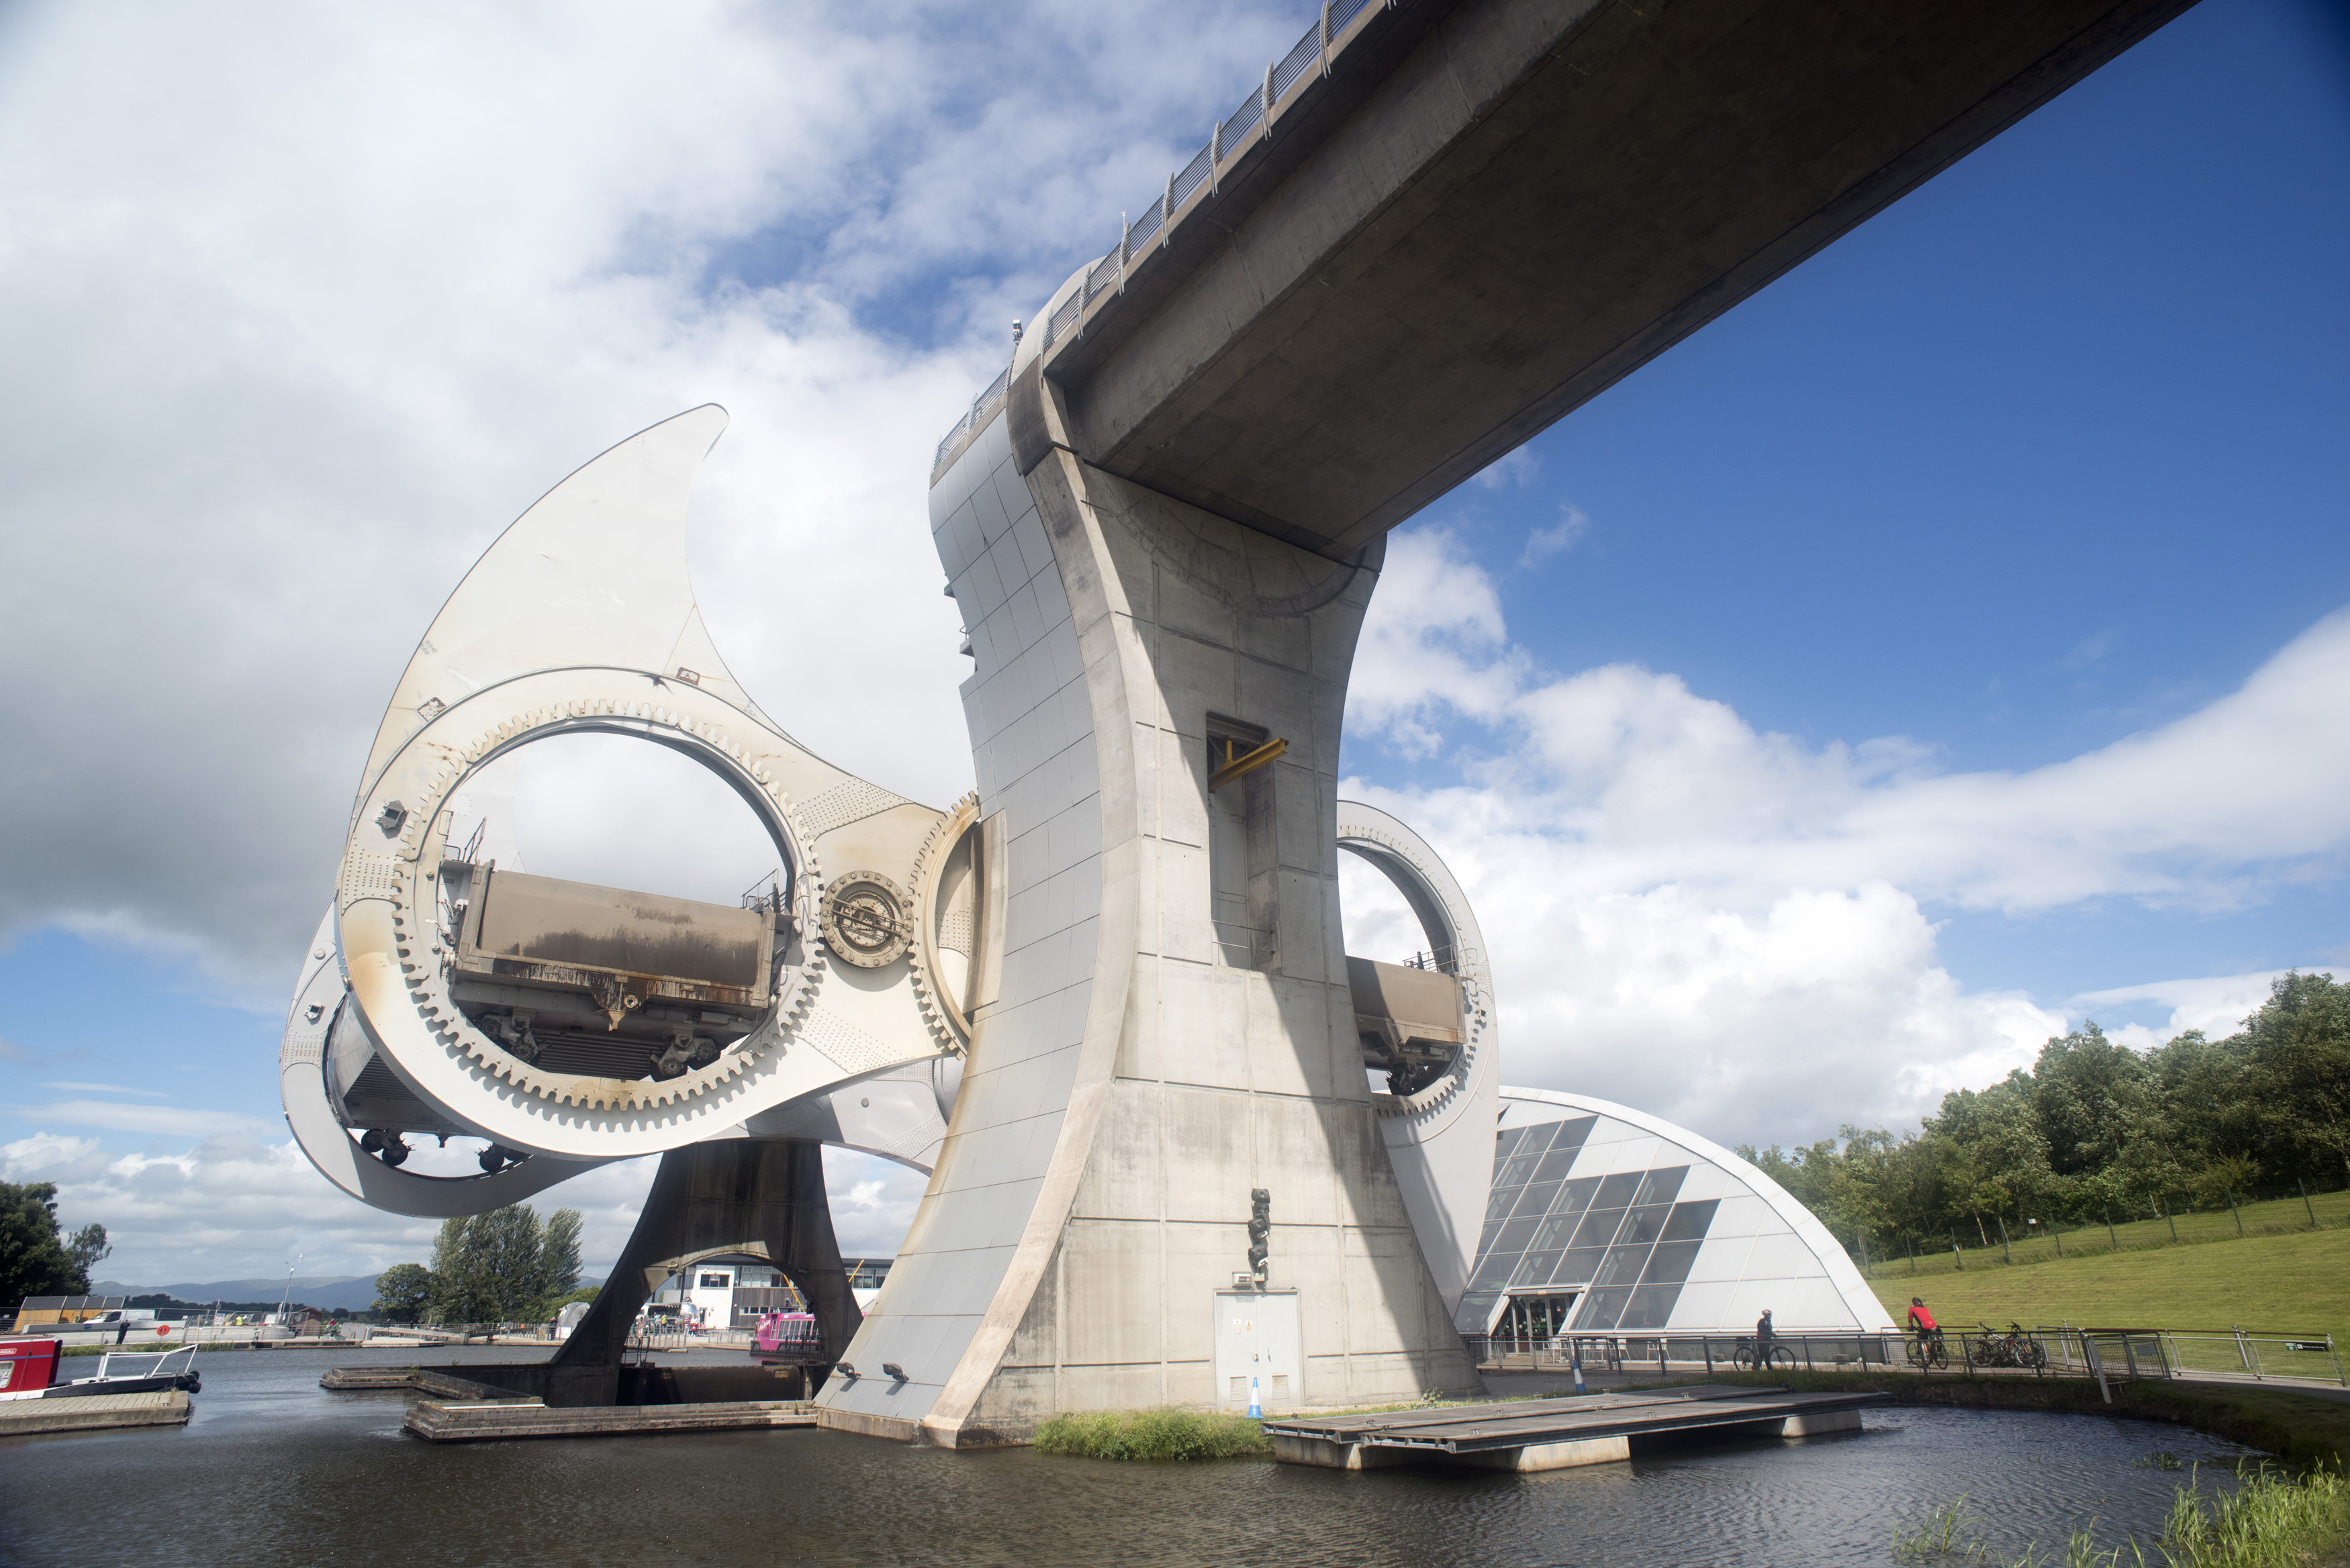 Uniquely shaped Falkirk wheel in Scotland as seen from a low angle view on a clear summer day